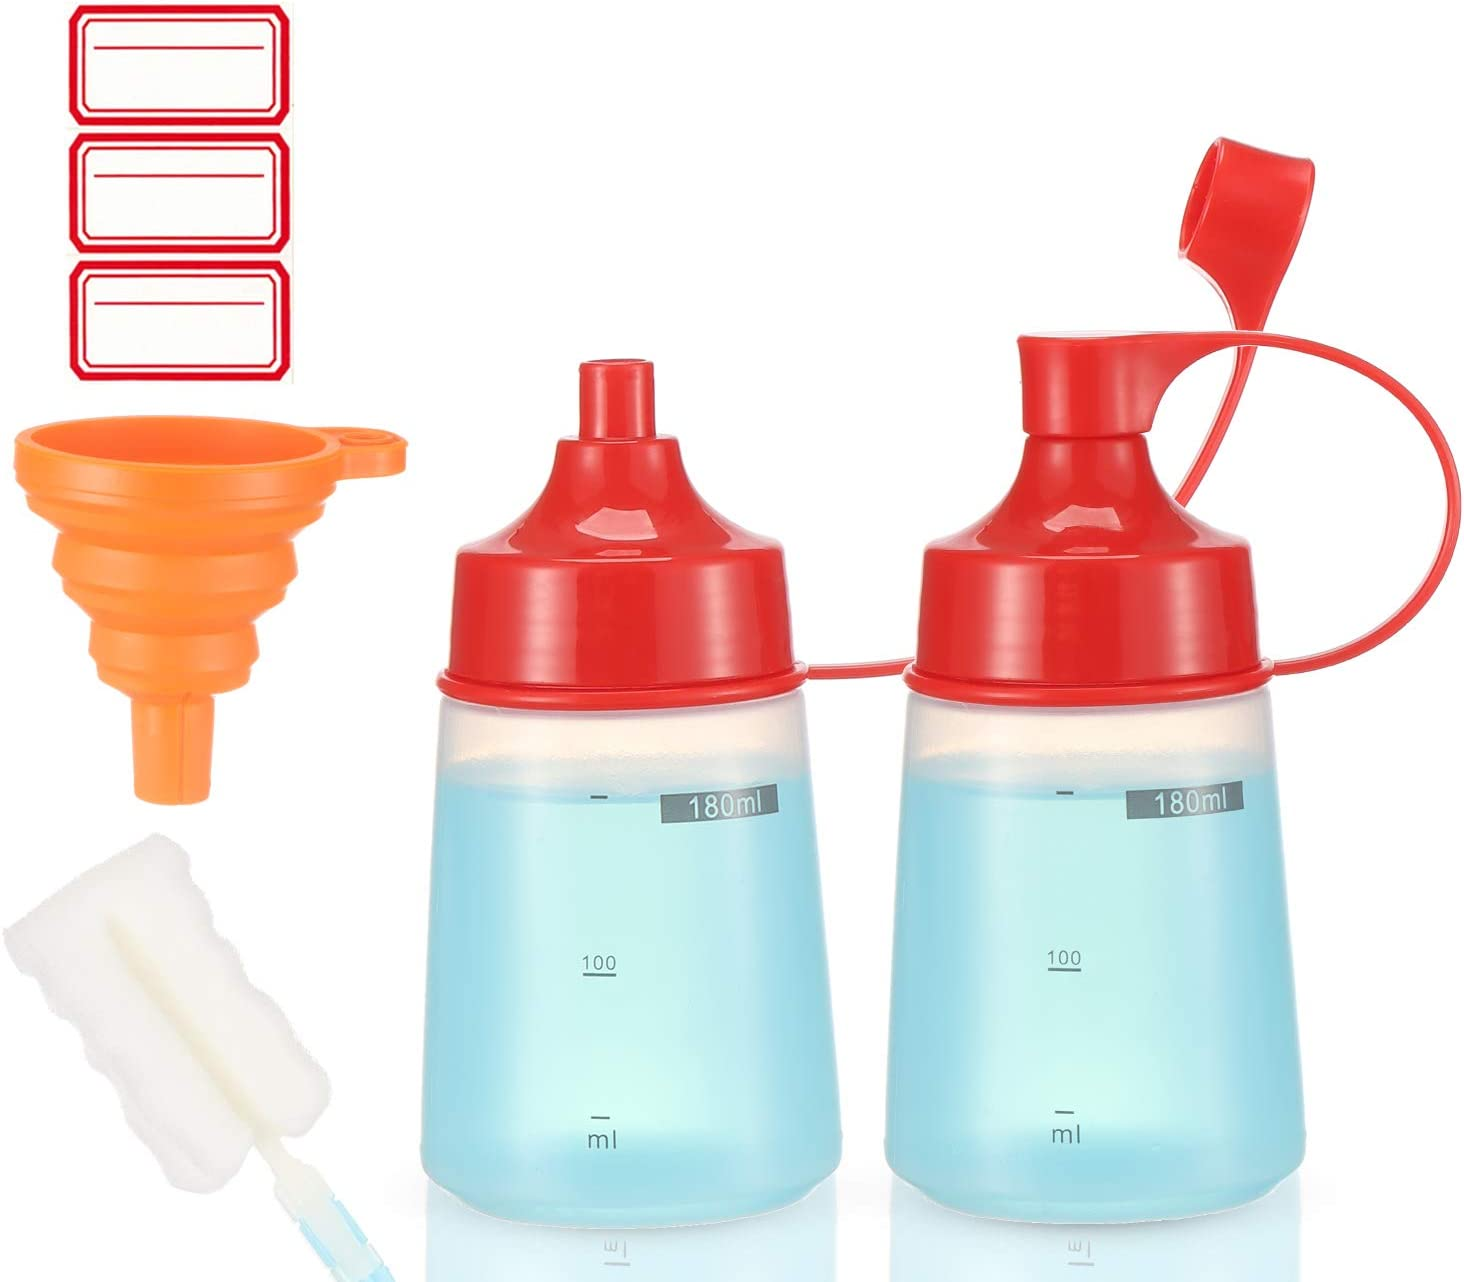 Condiment Squeeze Bottle Wide Mouth, Ondiomn 2 Pack 180ml Clear Squeeze Bottles for Condiments, Paint, Ketchup, Mustard, Oil, Sauces, Resin, Baking, Cake Decorating, Cleaning, BPA Free-Food Grade